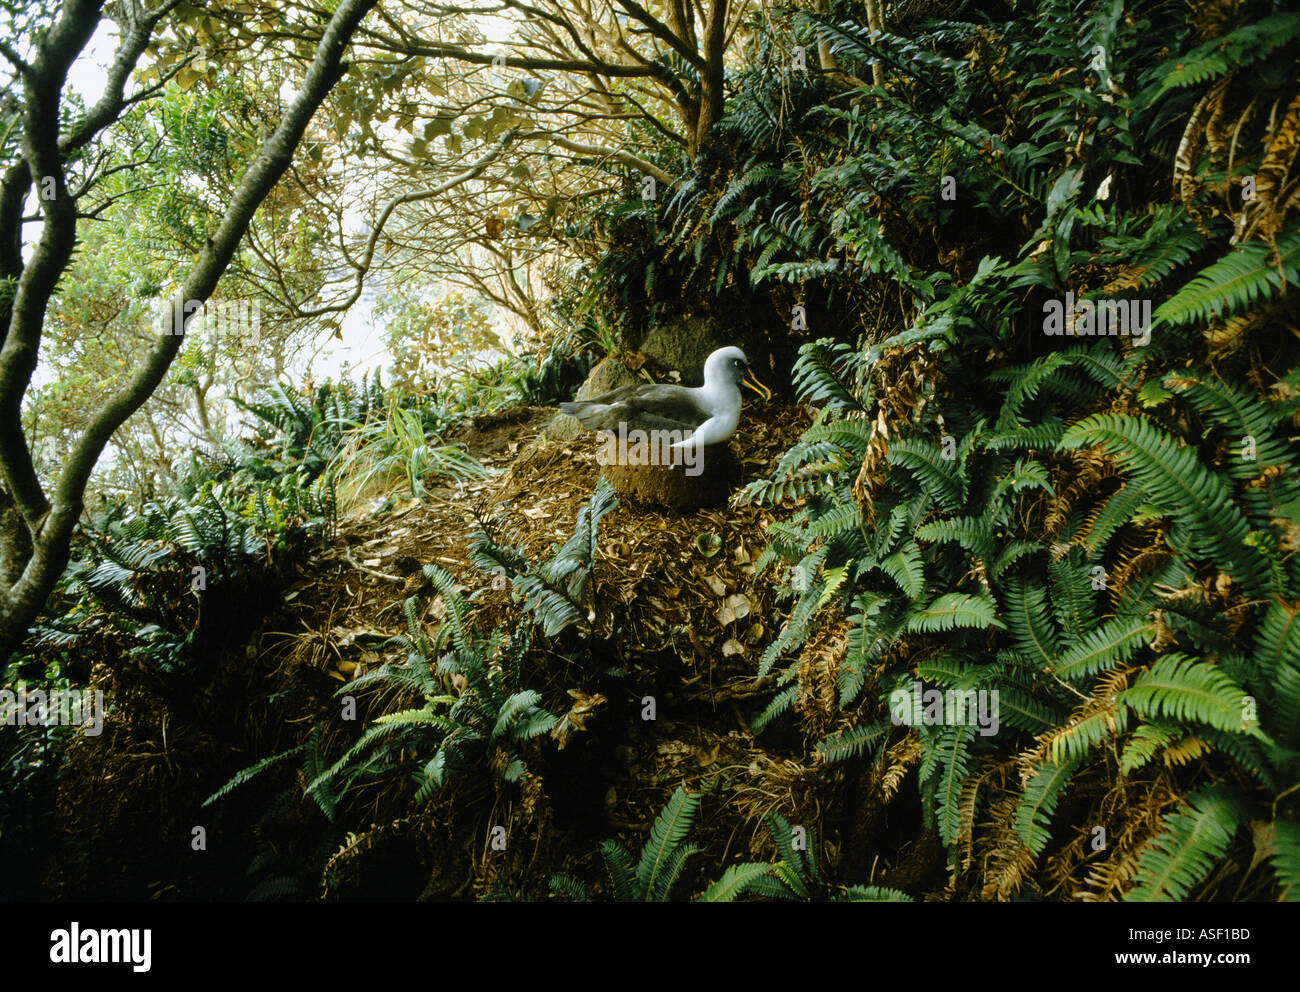 Southern Buller s albatross Buller s mollymawk nesting among forest like shrubs and ferns Solander Island New Zealand - Stock Image